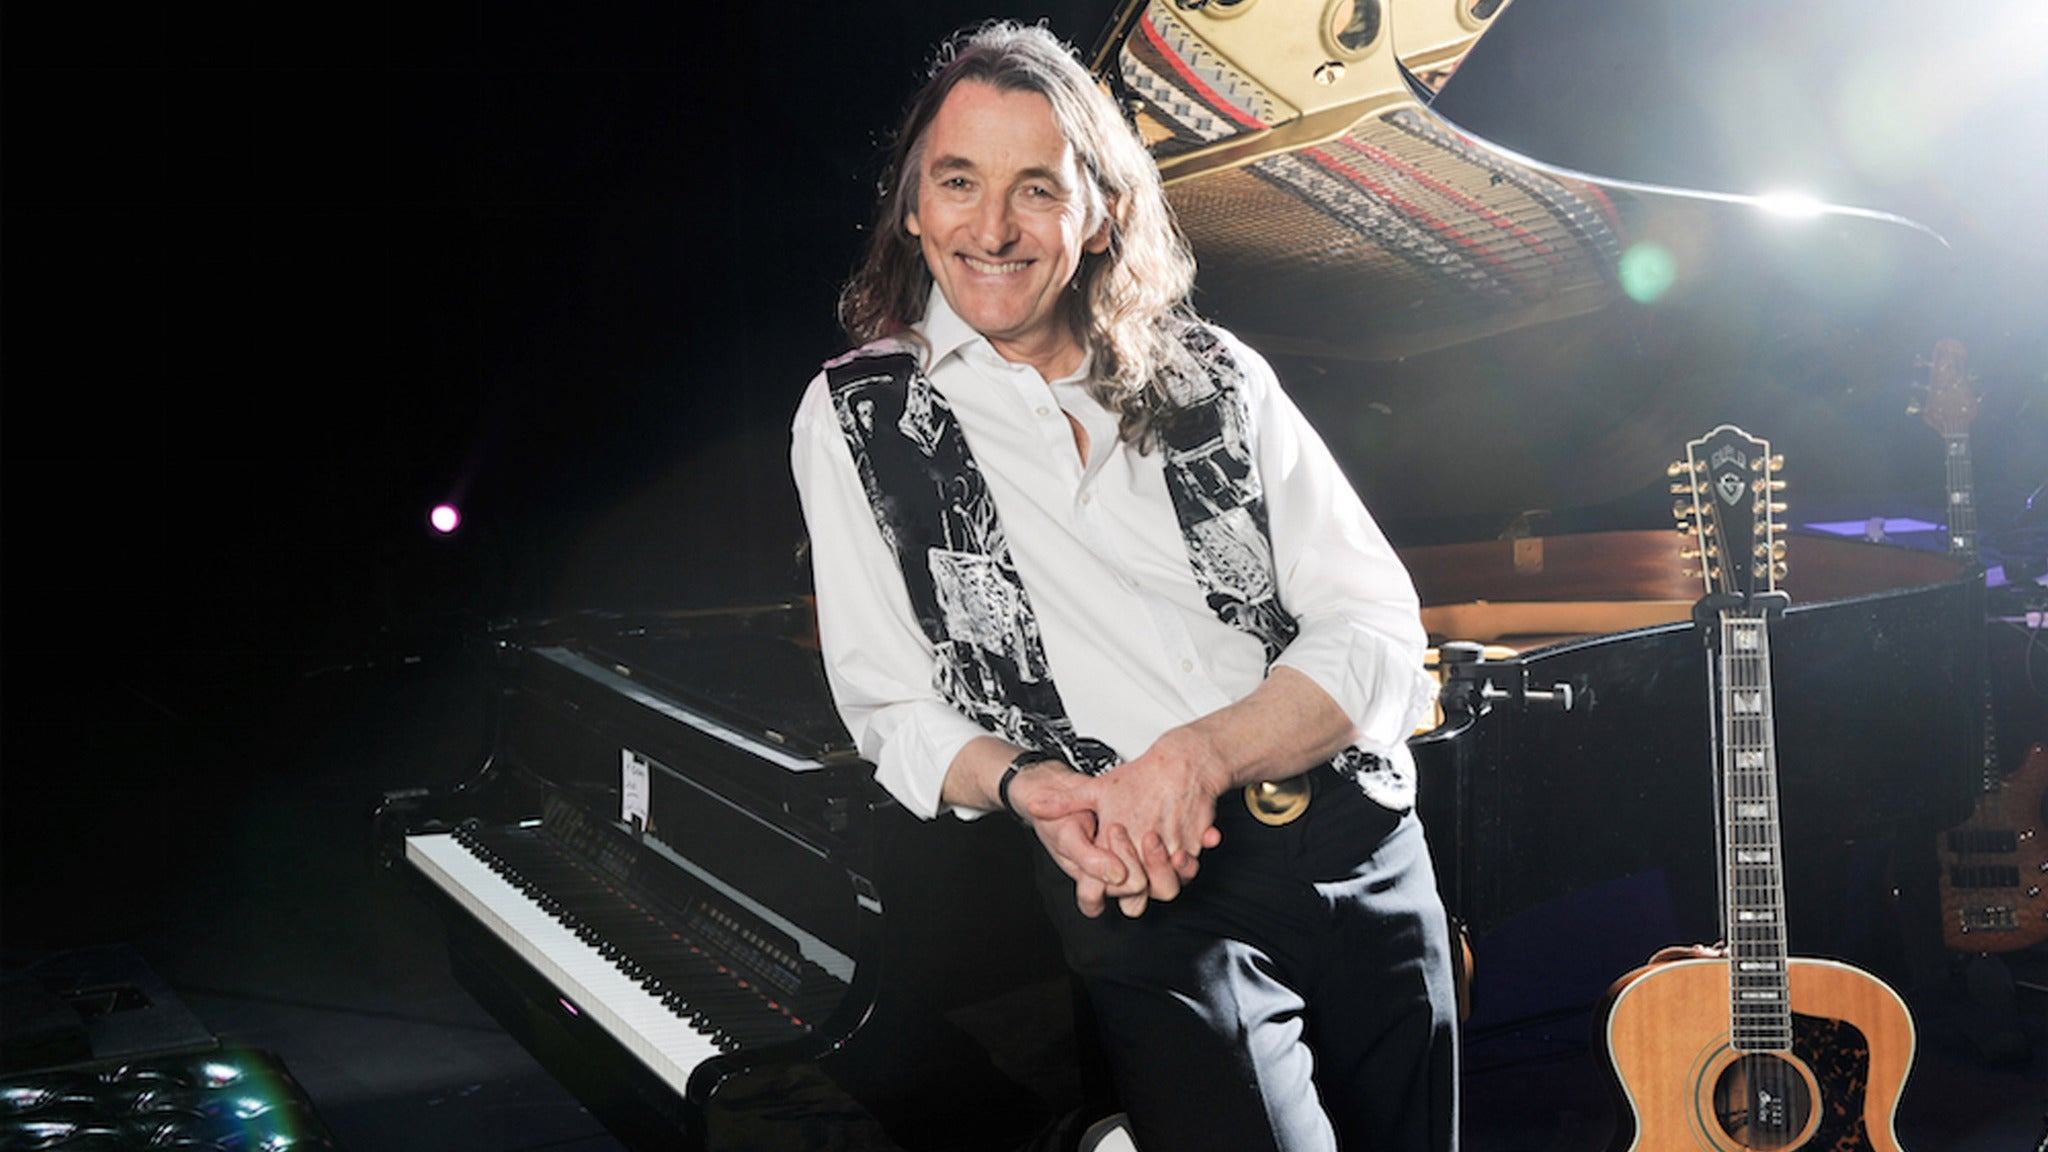 Roger Hodgson, formerly of Supertramp